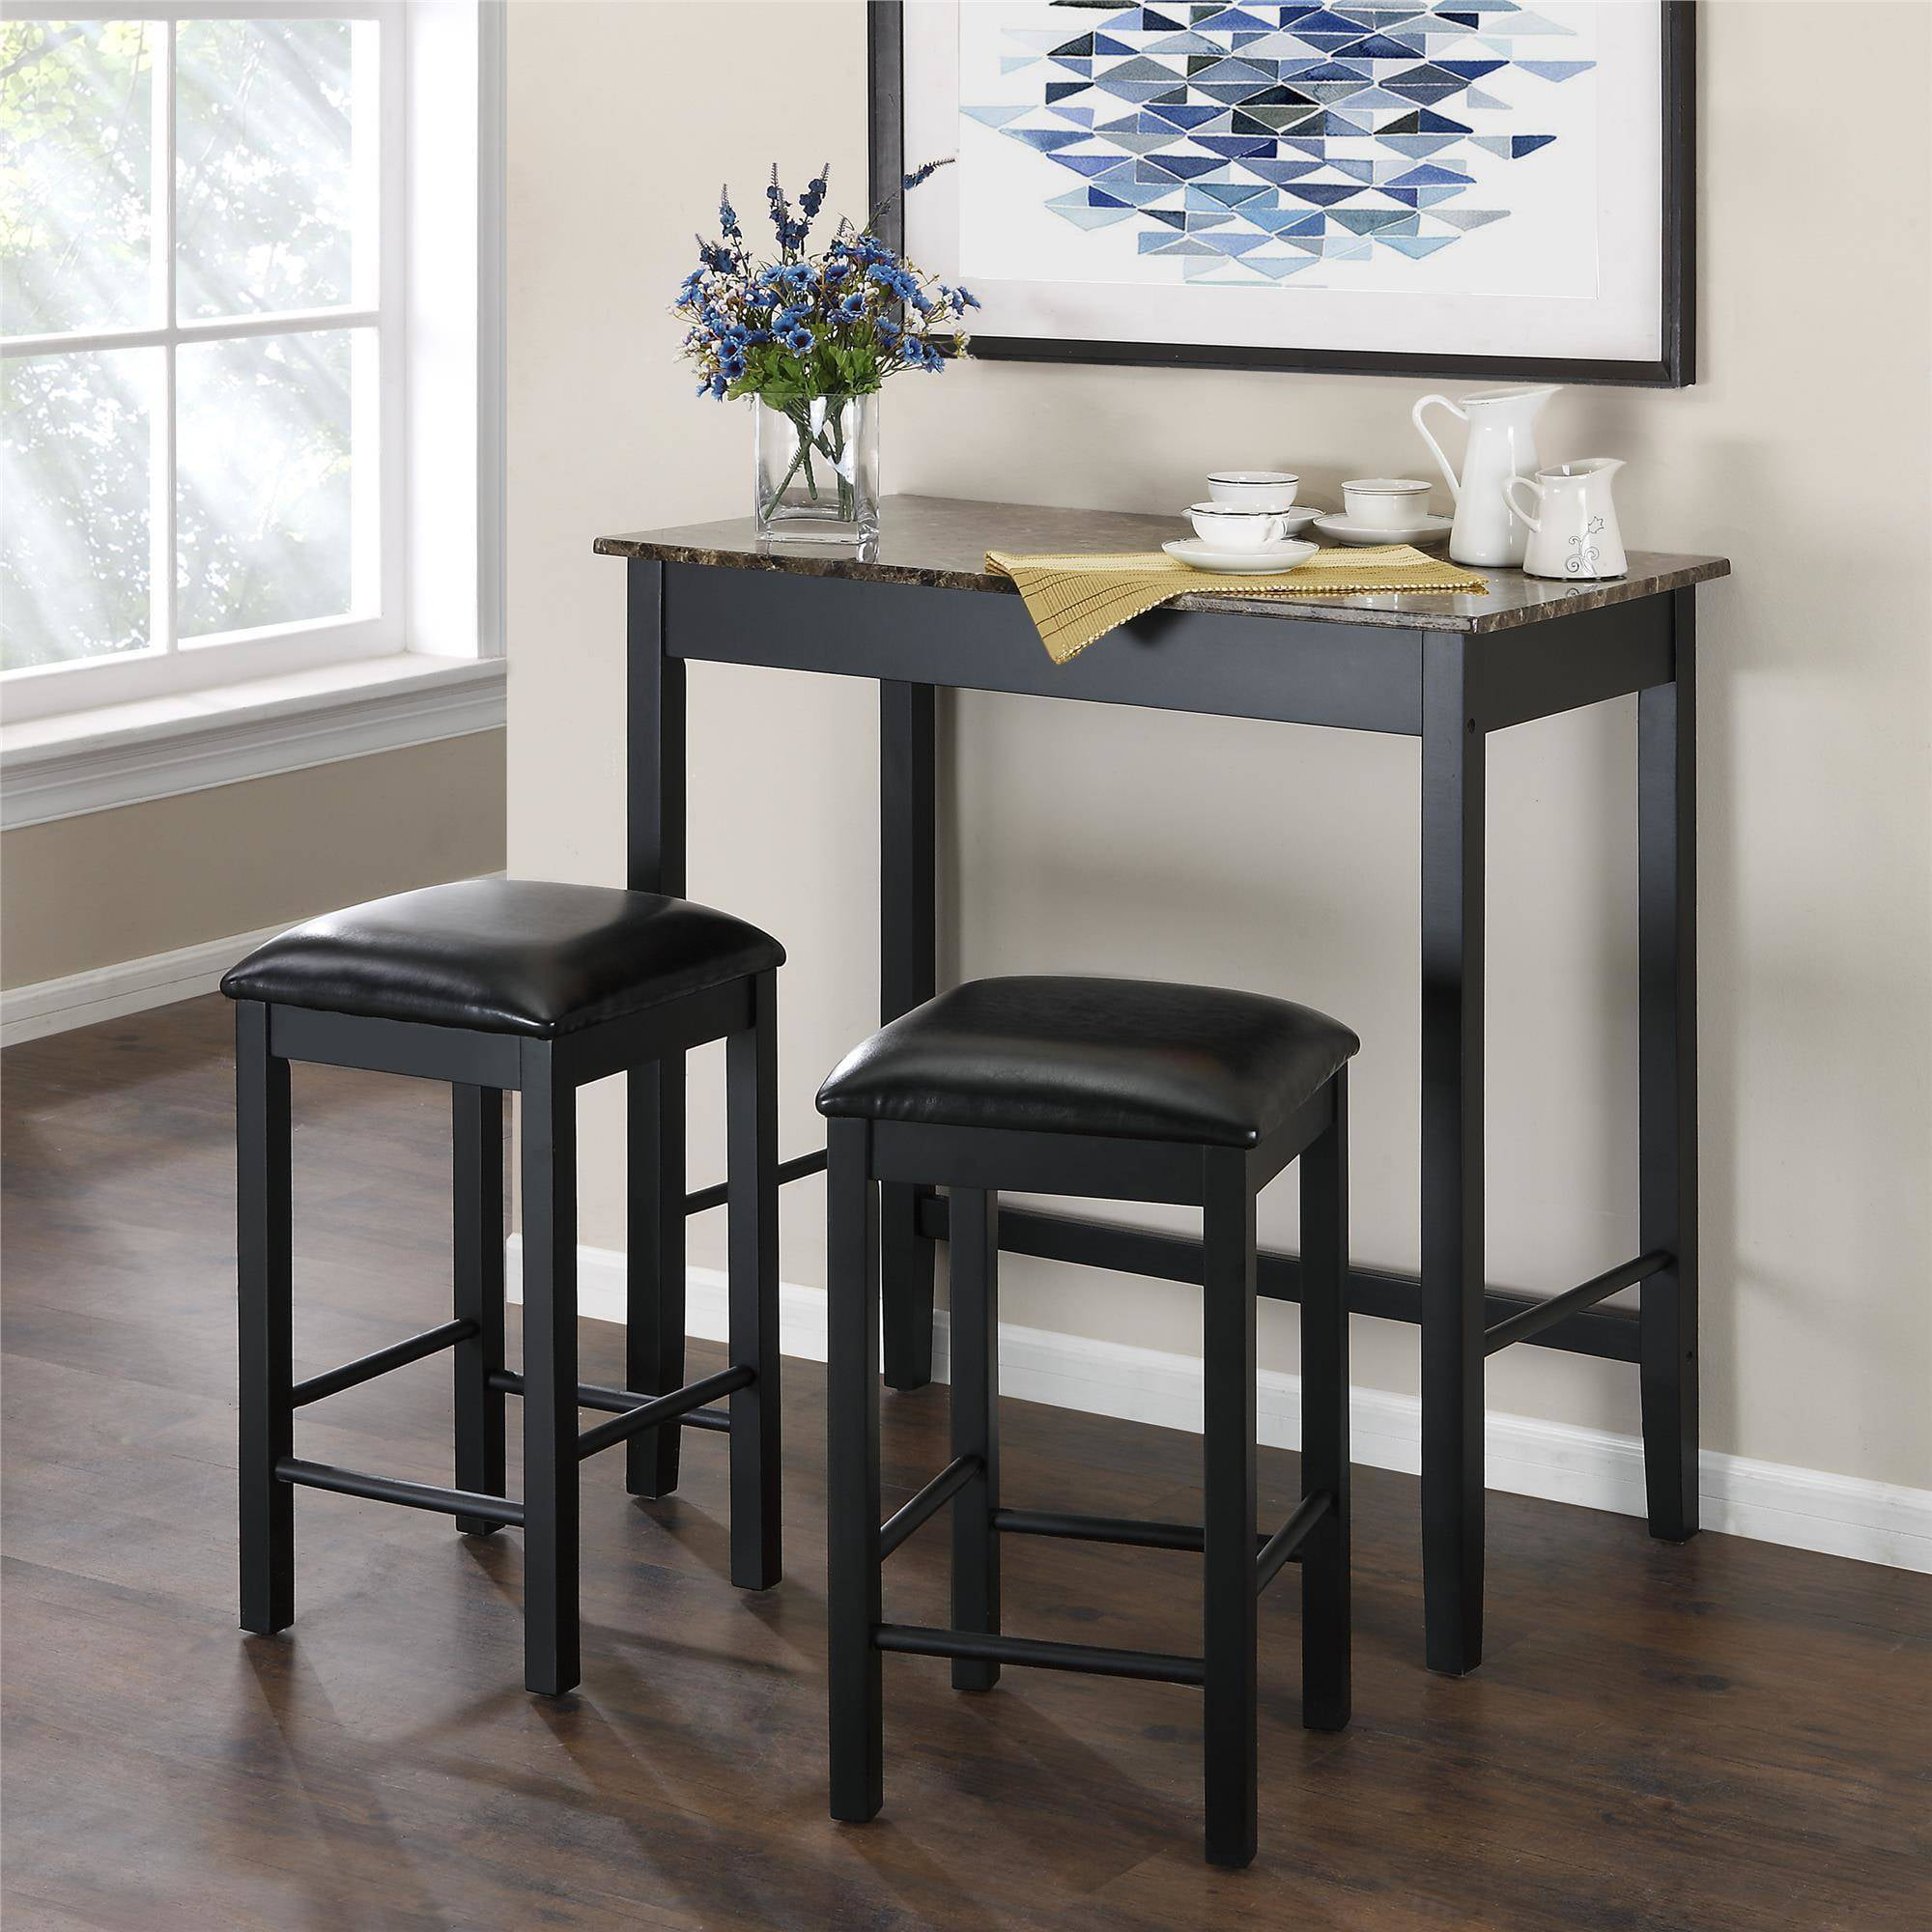 Dorel Living Devyn 3-Piece Faux Marble Pub Dining Set, Black ...